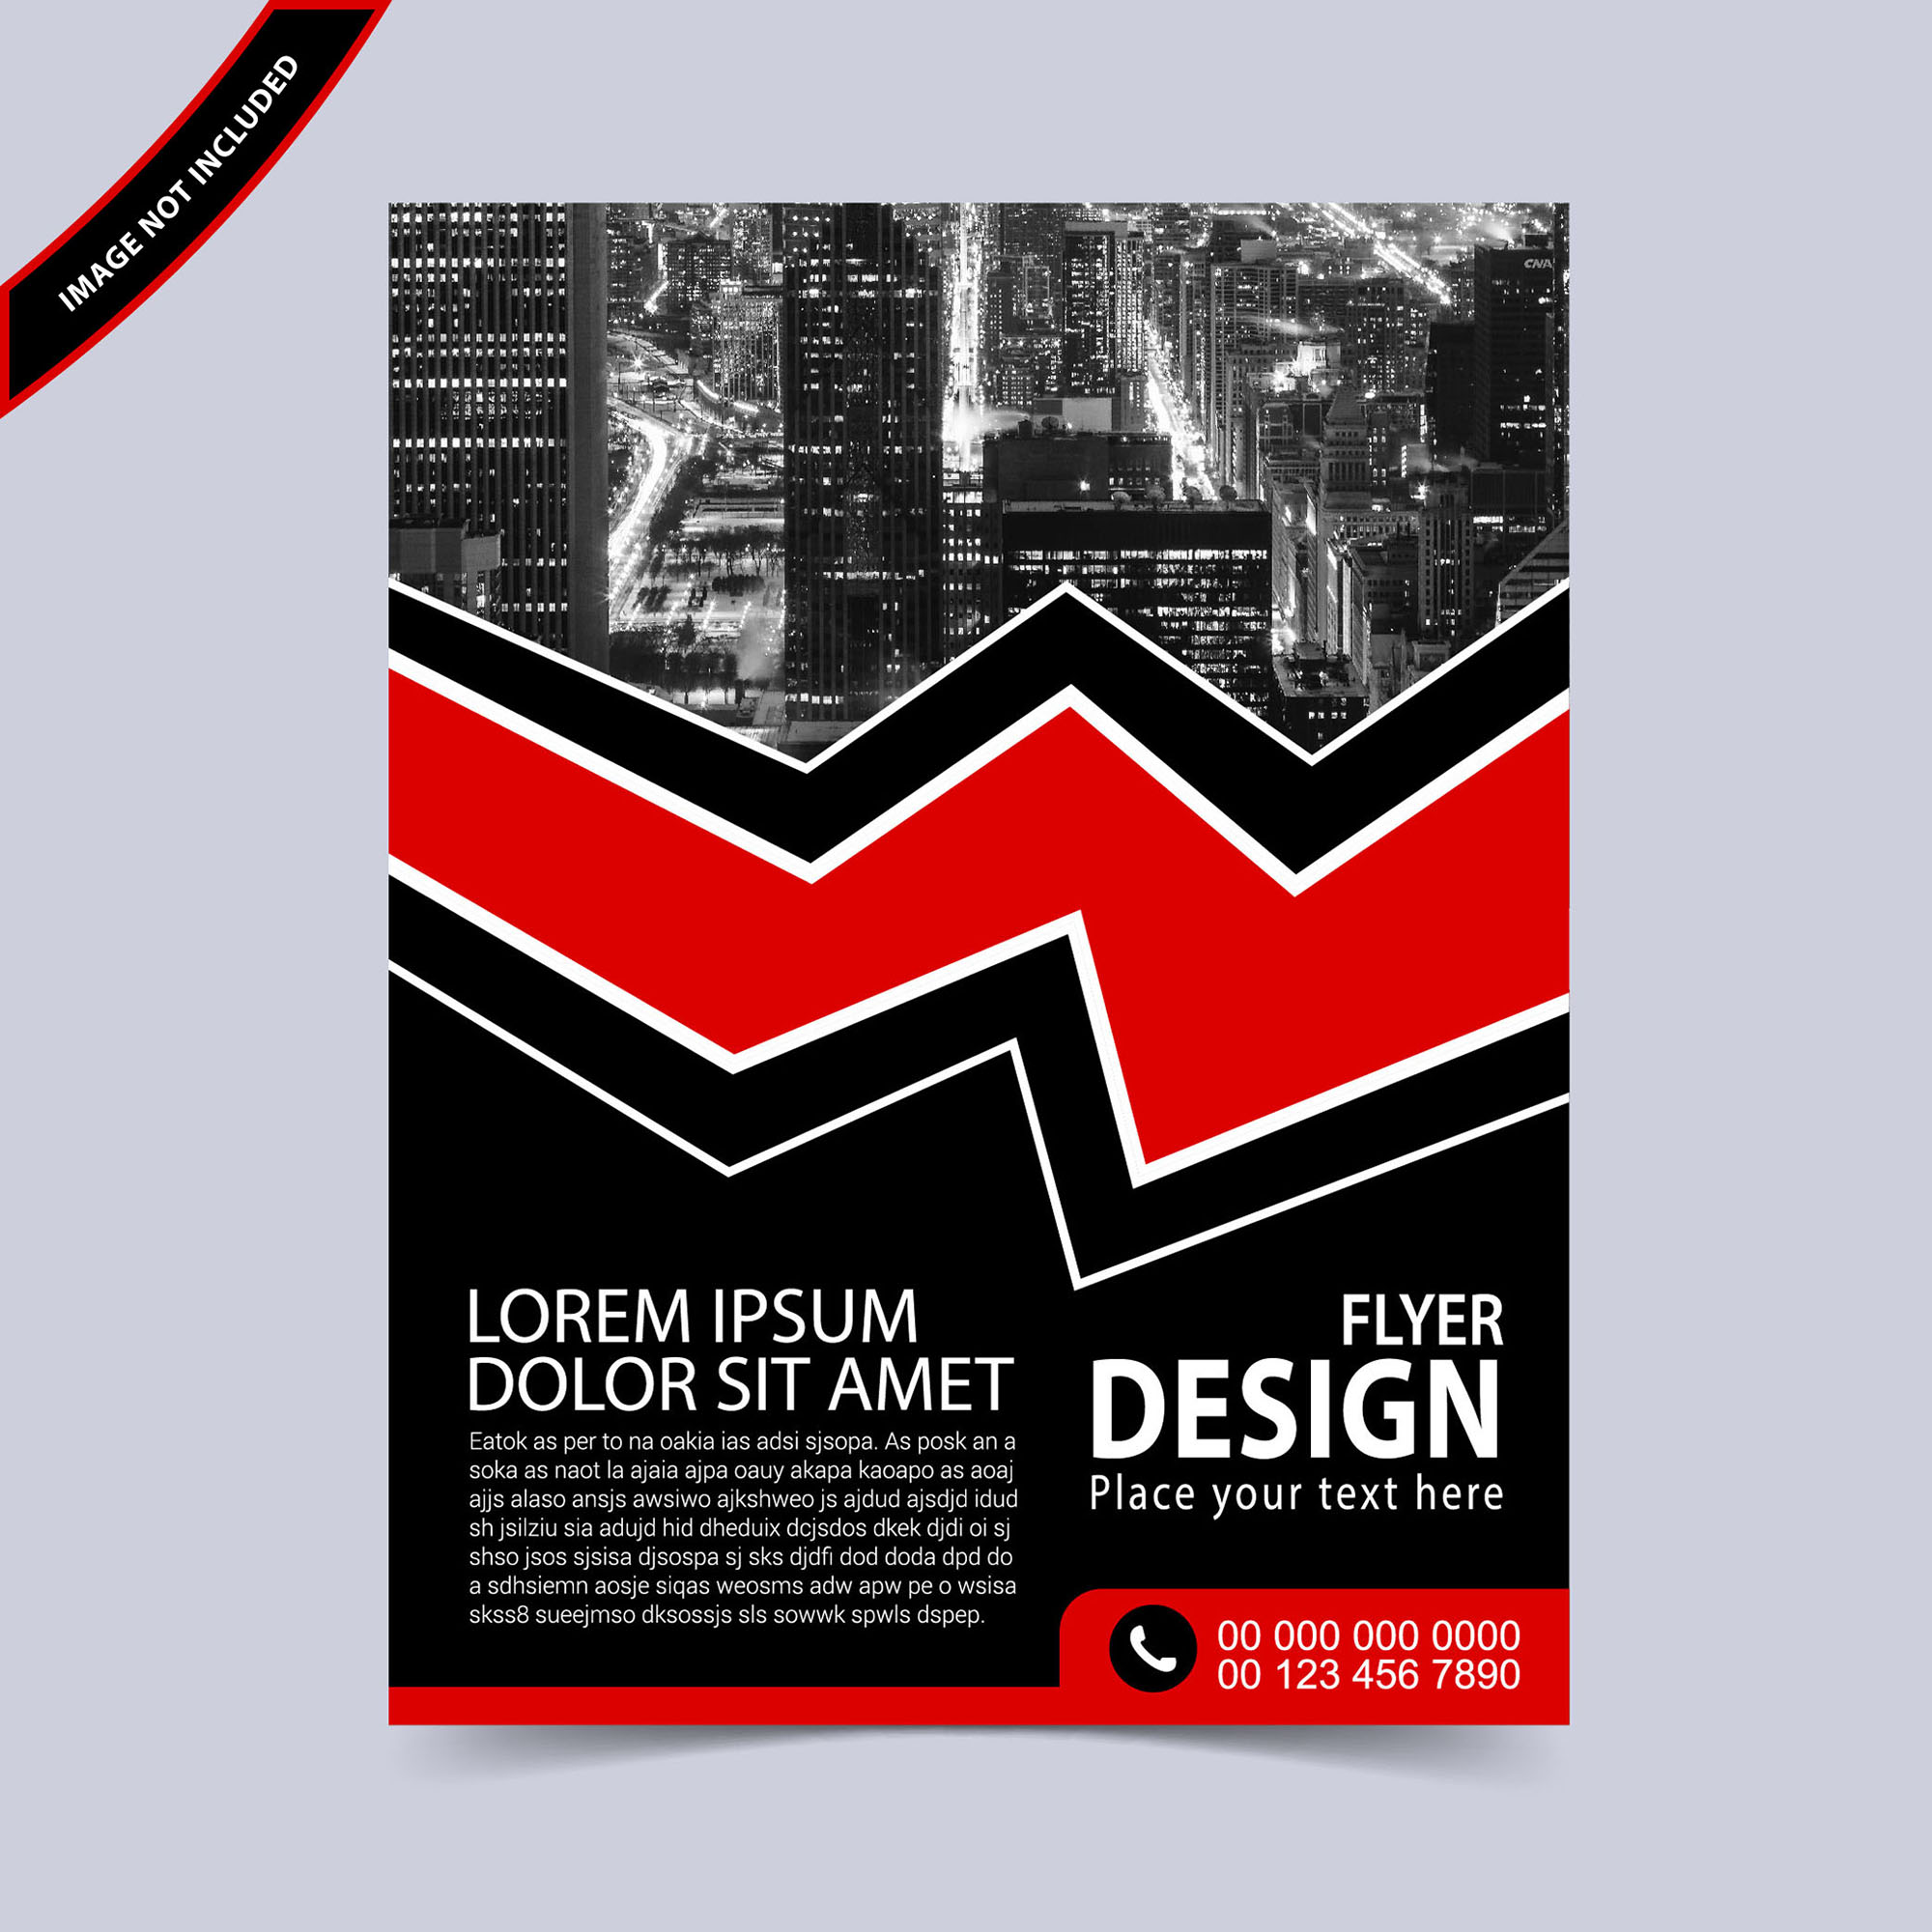 Free Editable Flyer Template Flyer Free Download Wisxi